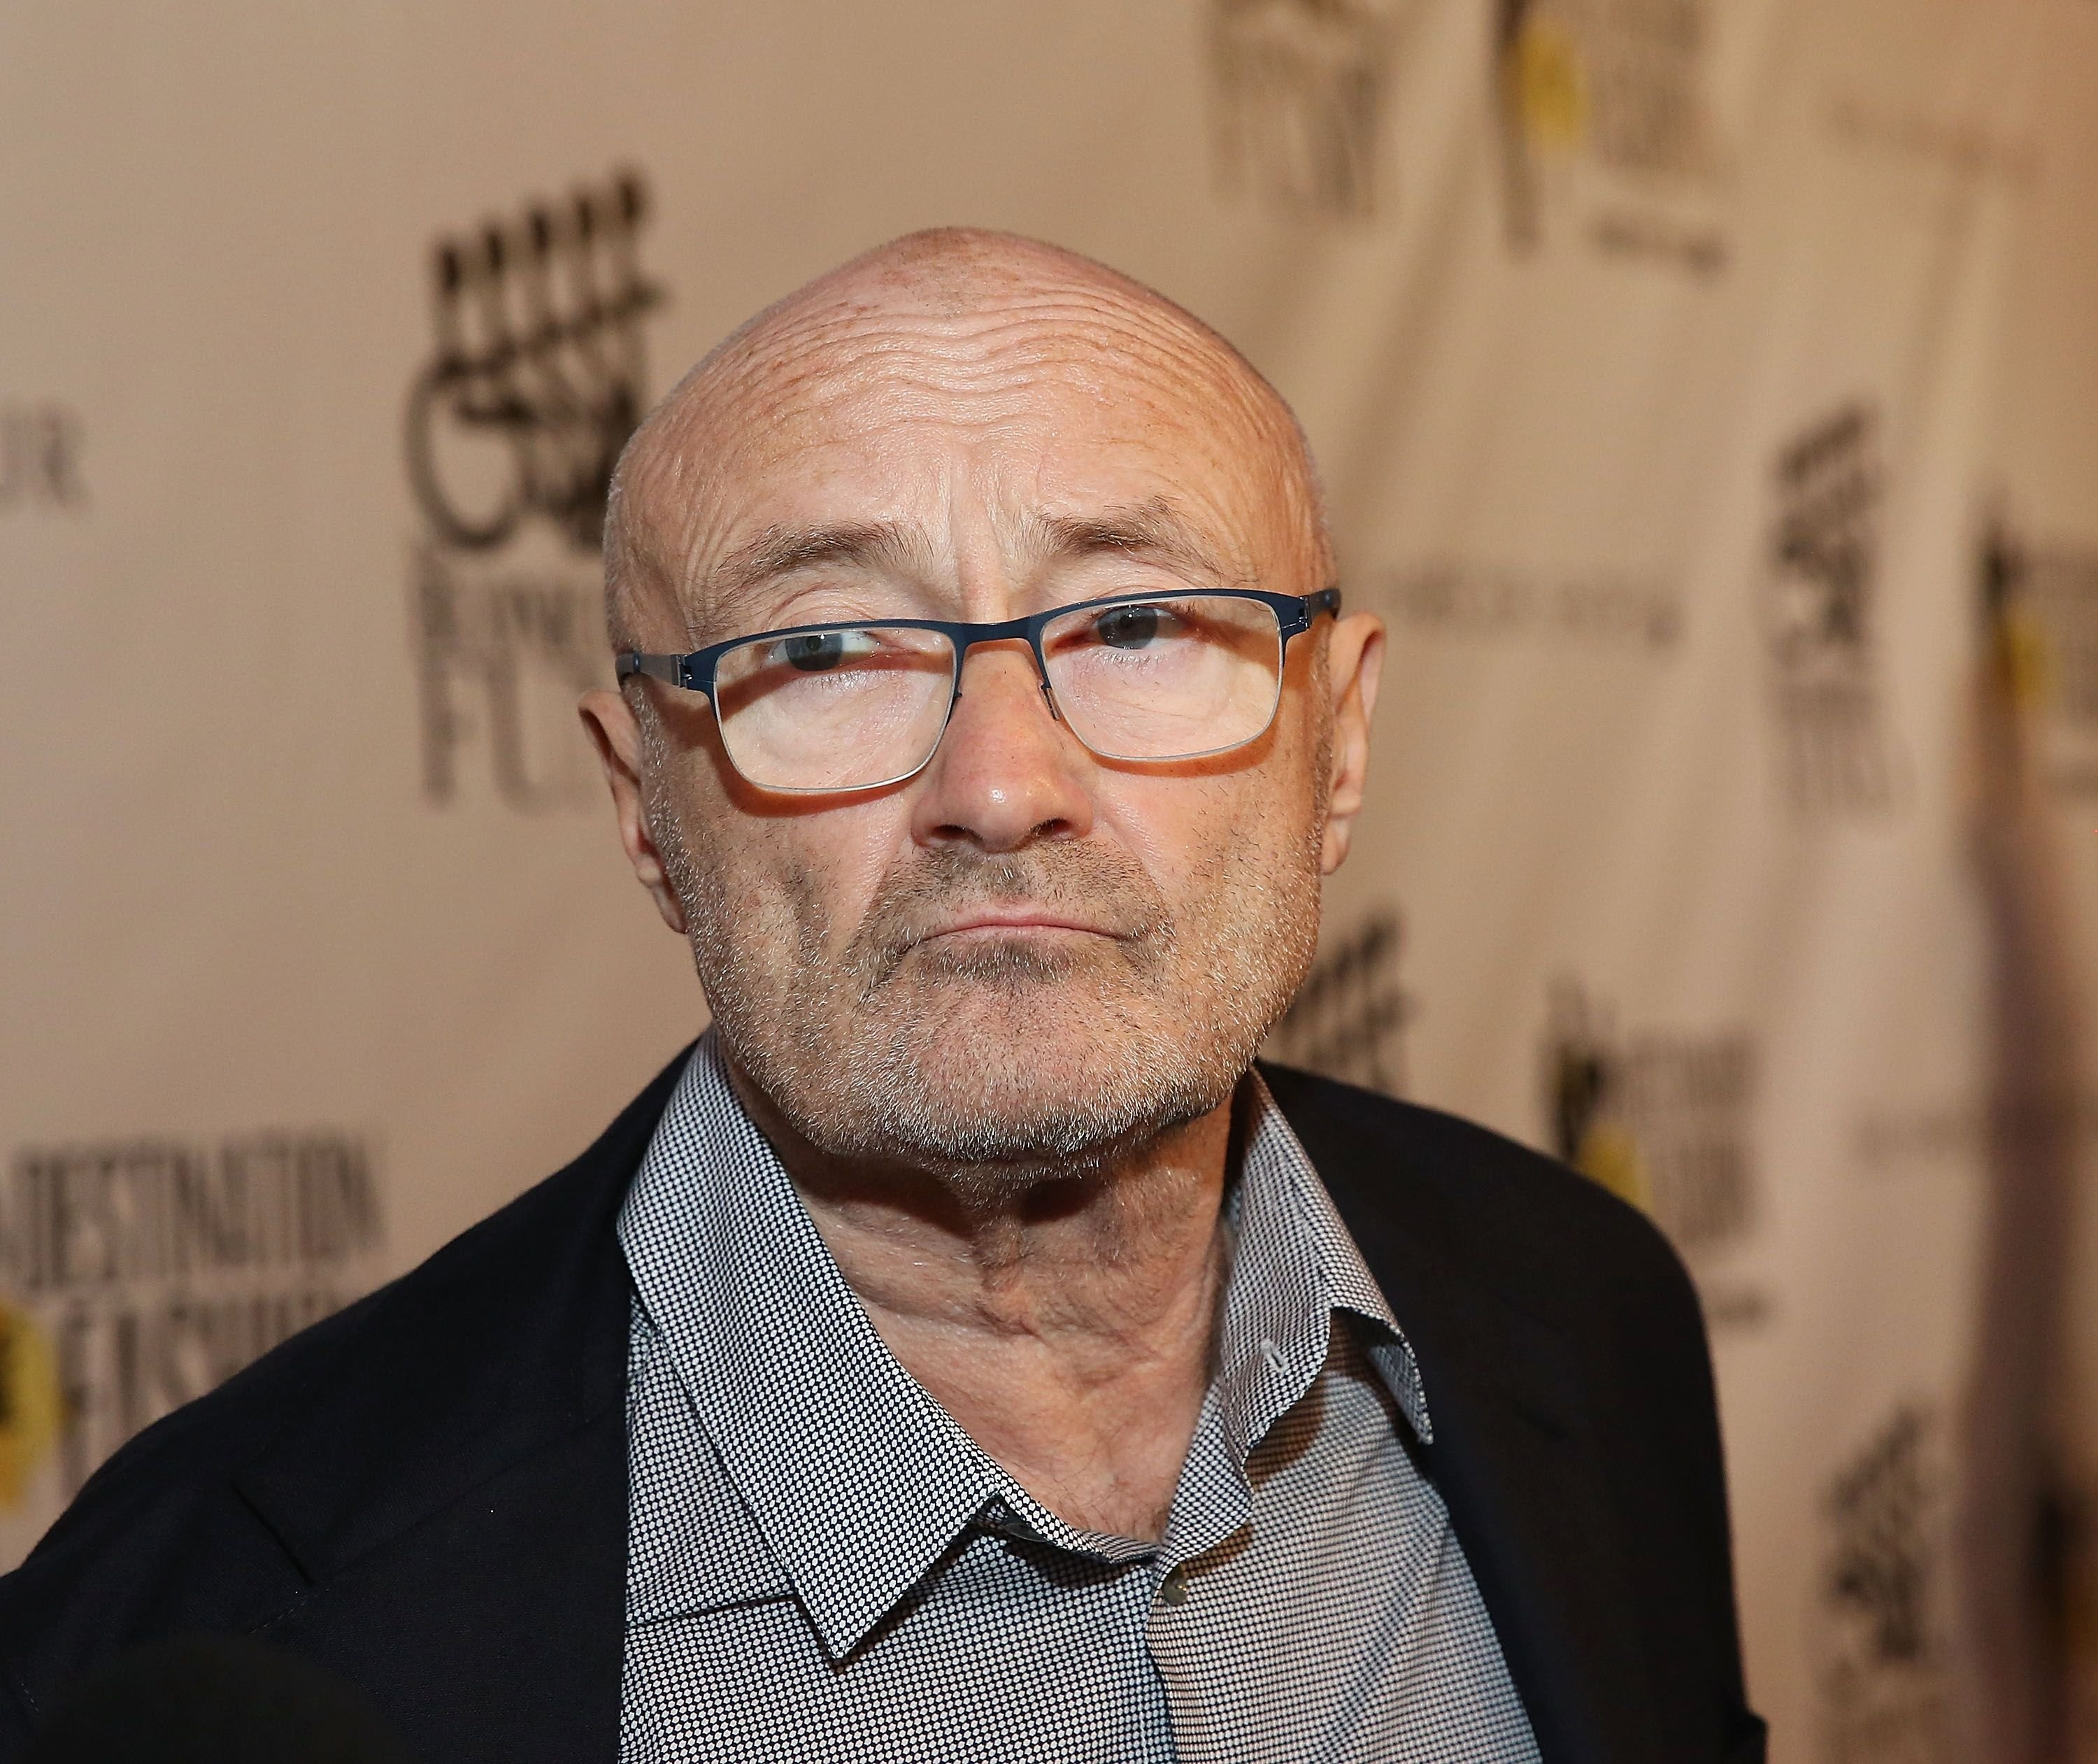 Phil Collins at Destination Fashion 2016 to benefit The Buoniconti Fund to Cure Paralysis, at Bal Harbour Shops in Miami, Florida | Photo: Aaron Davidson/FilmMagic via Getty Images